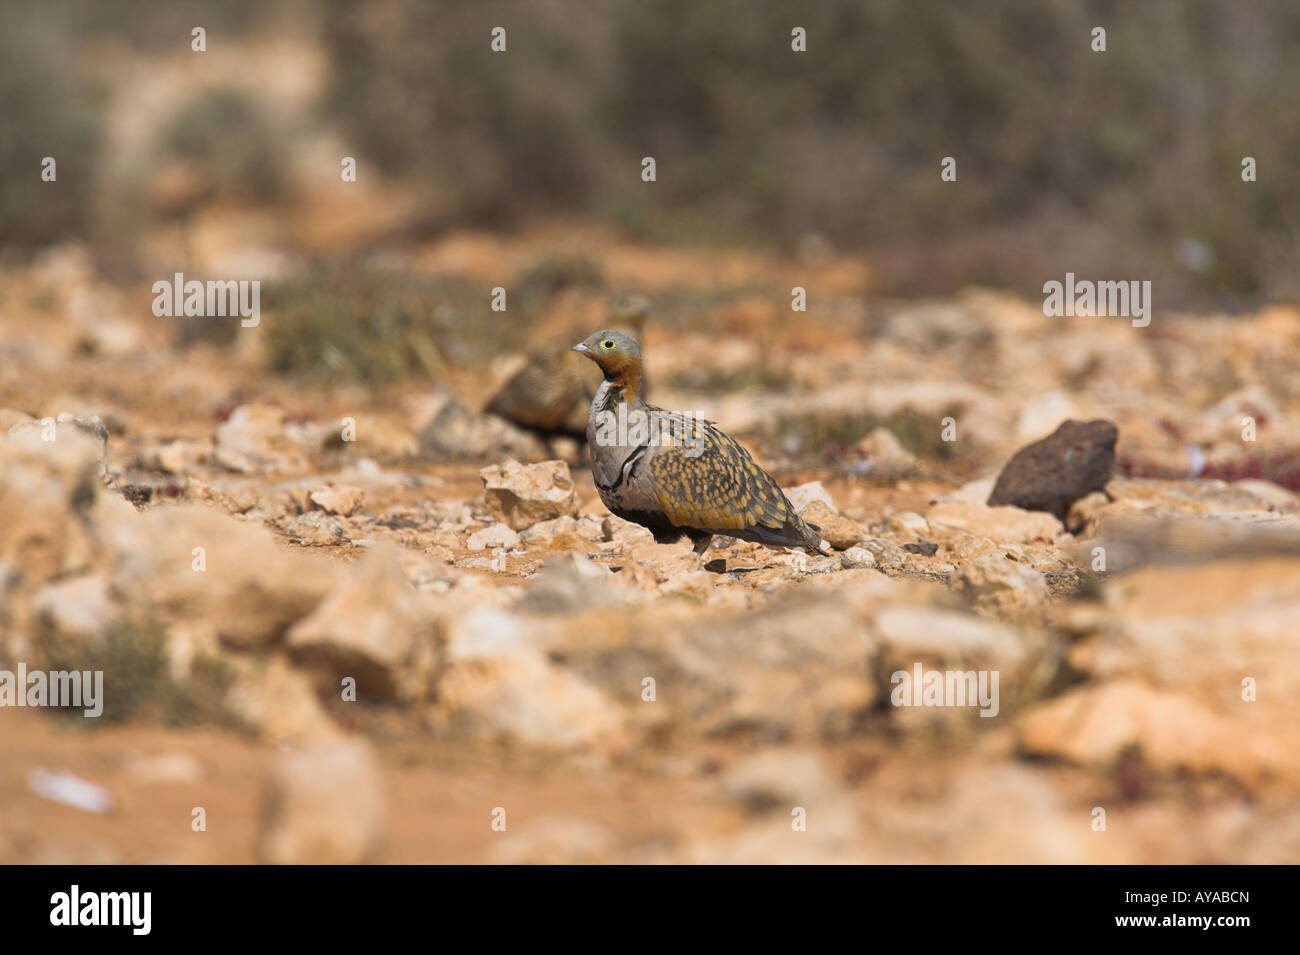 Black-bellied Sandgrouse Pterocles orientalis male standing in in desert near reservoir on Fuerteventura in March - Stock Image